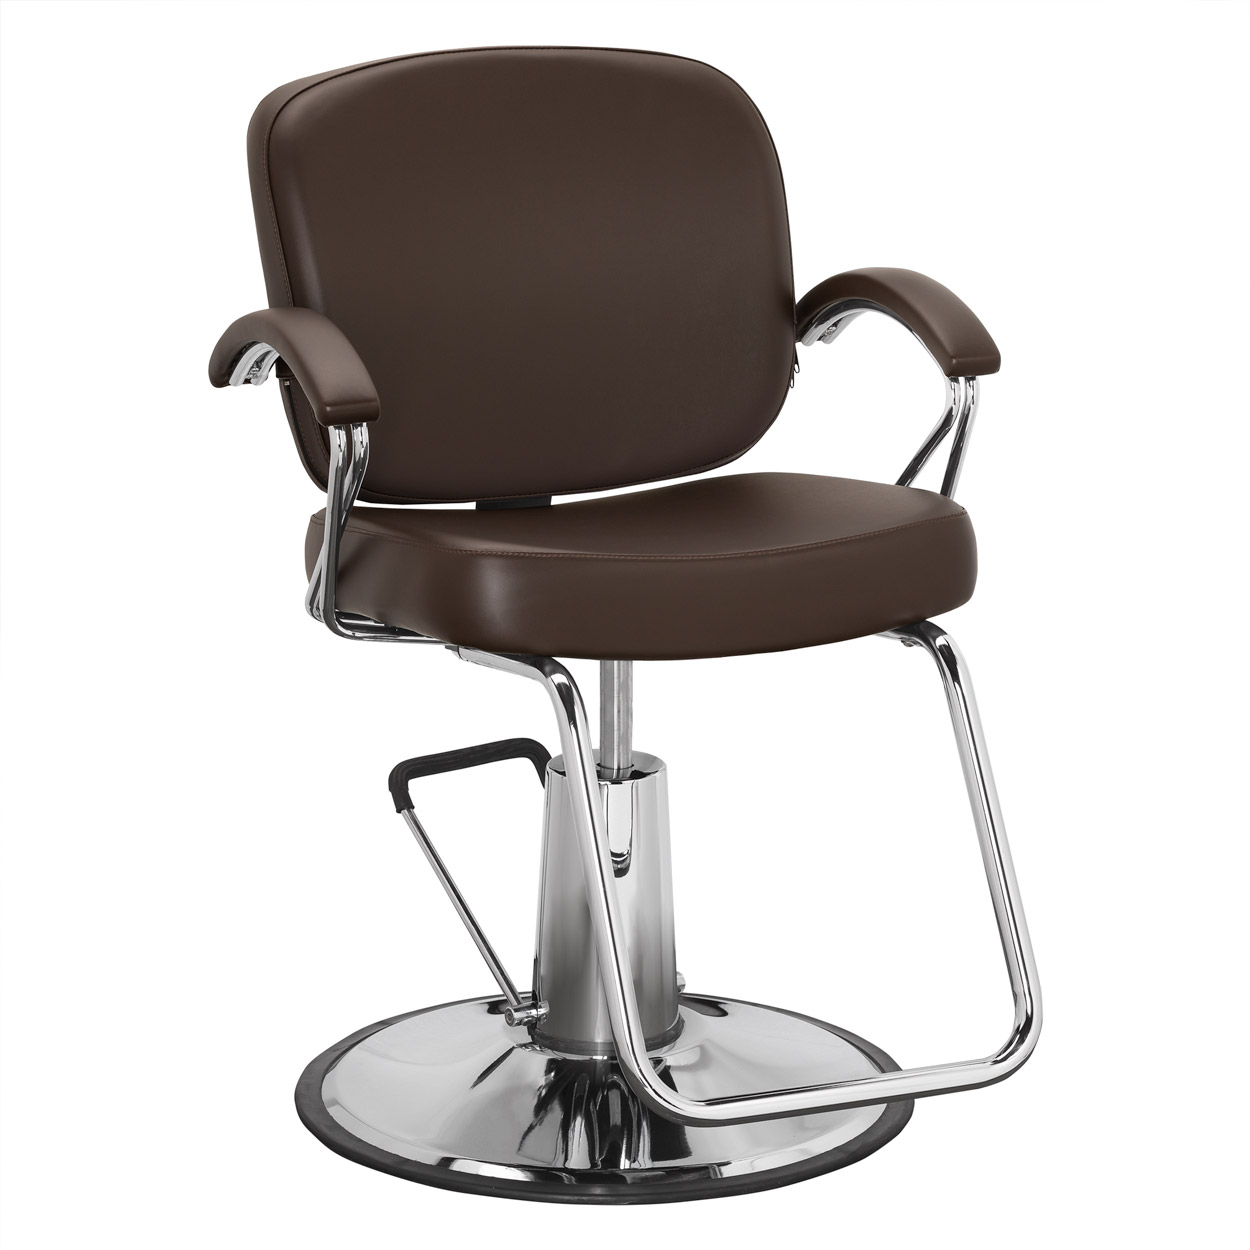 Pibbs 5906 Samantha Hair Salon Chair with Padded Arms alternative product image 2